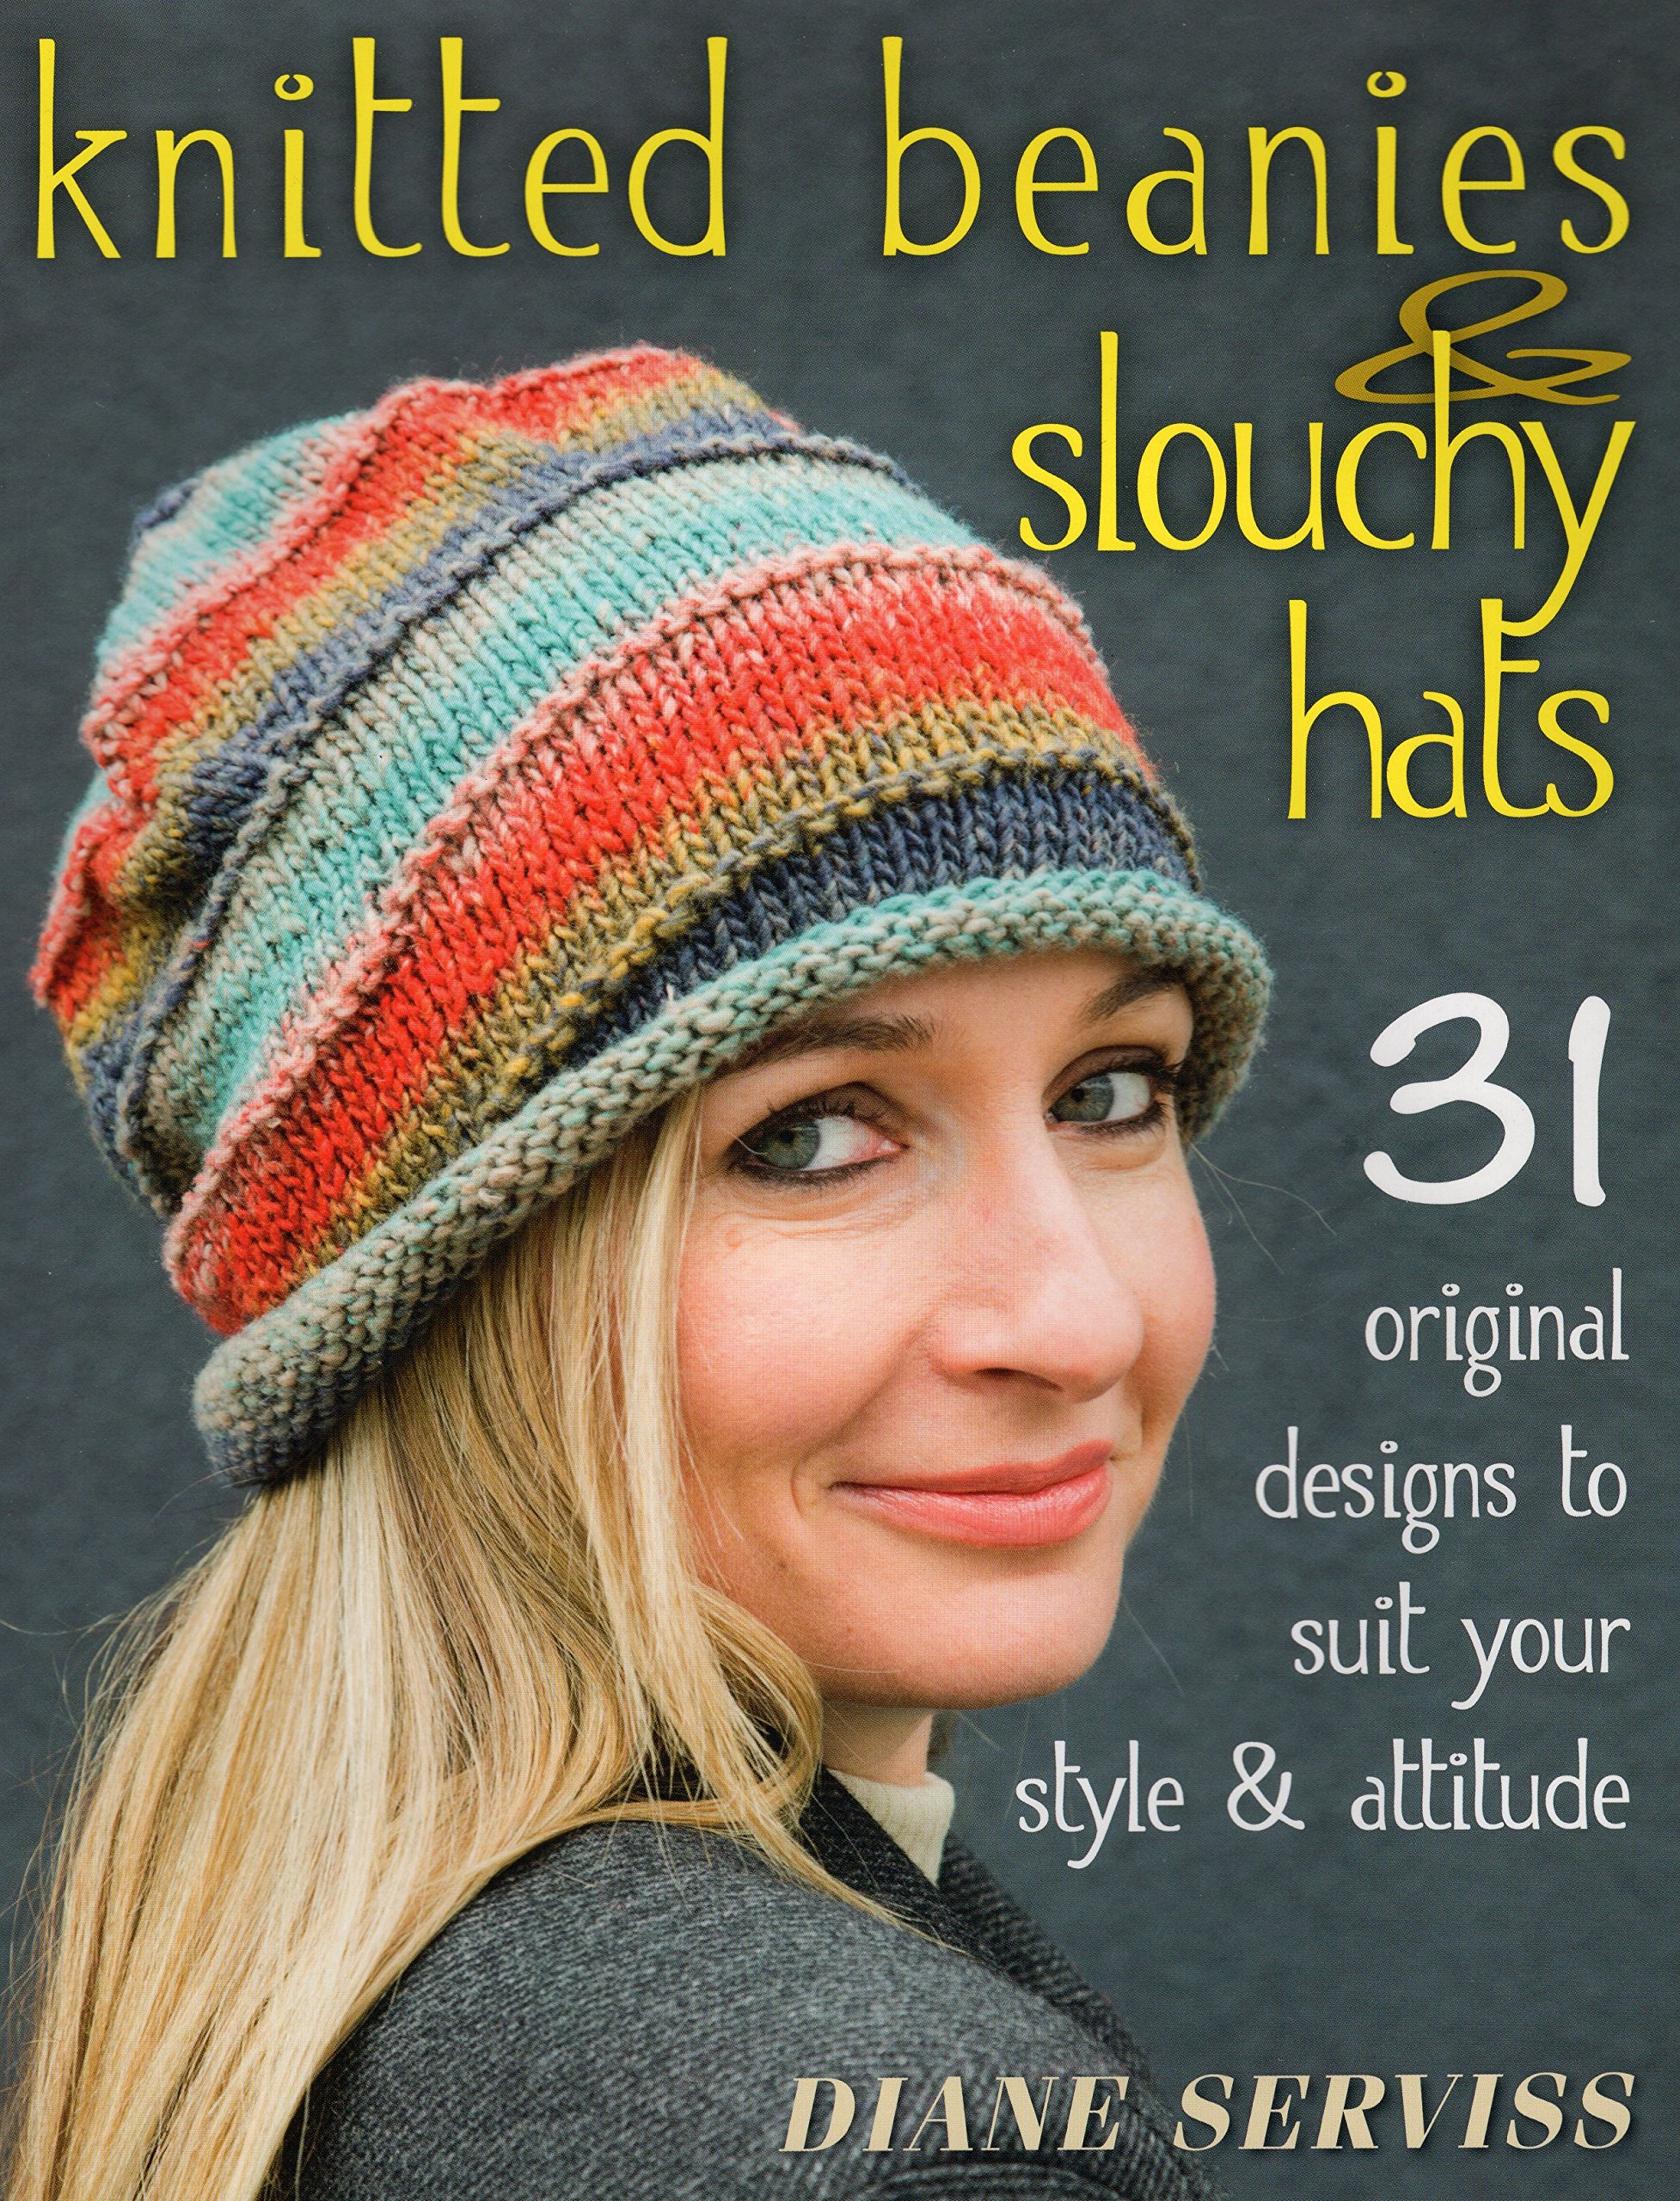 b98a5df2715 Stackpole Books Knitted Beanies and Slouchy Hats  Diane Serviss ...